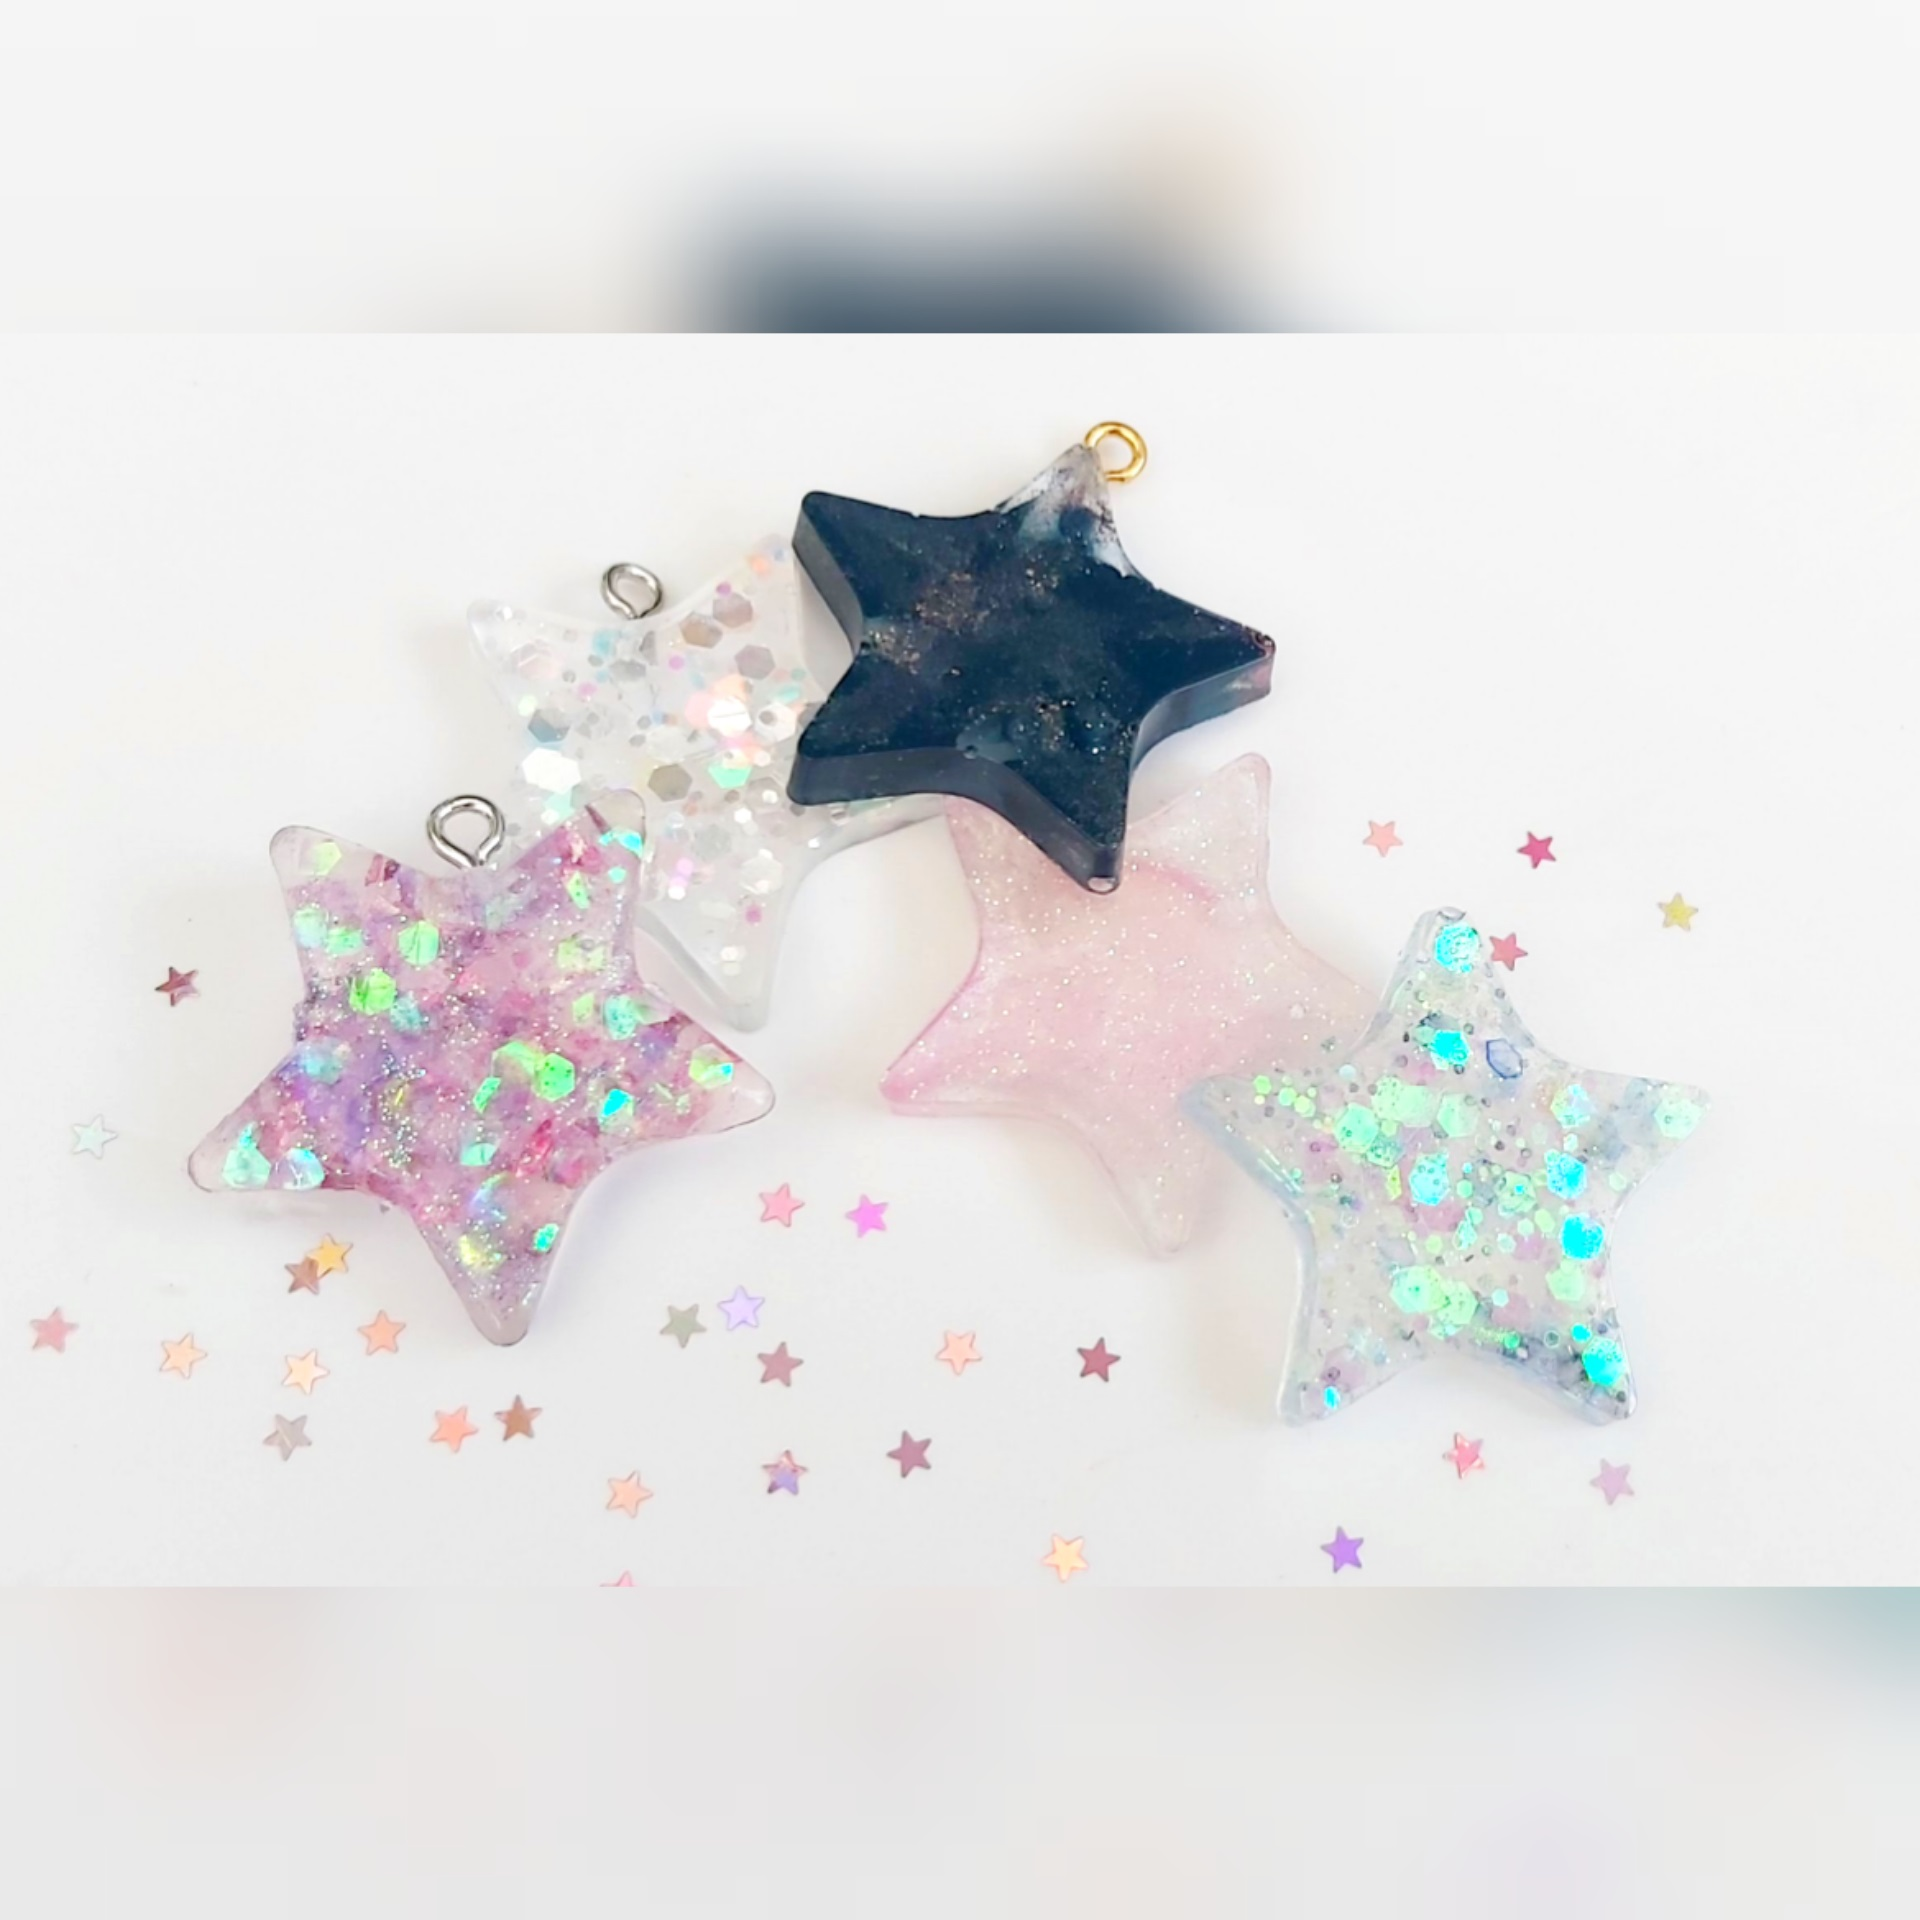 Mini Star Shaped Resin Hangers (Set Of 5)